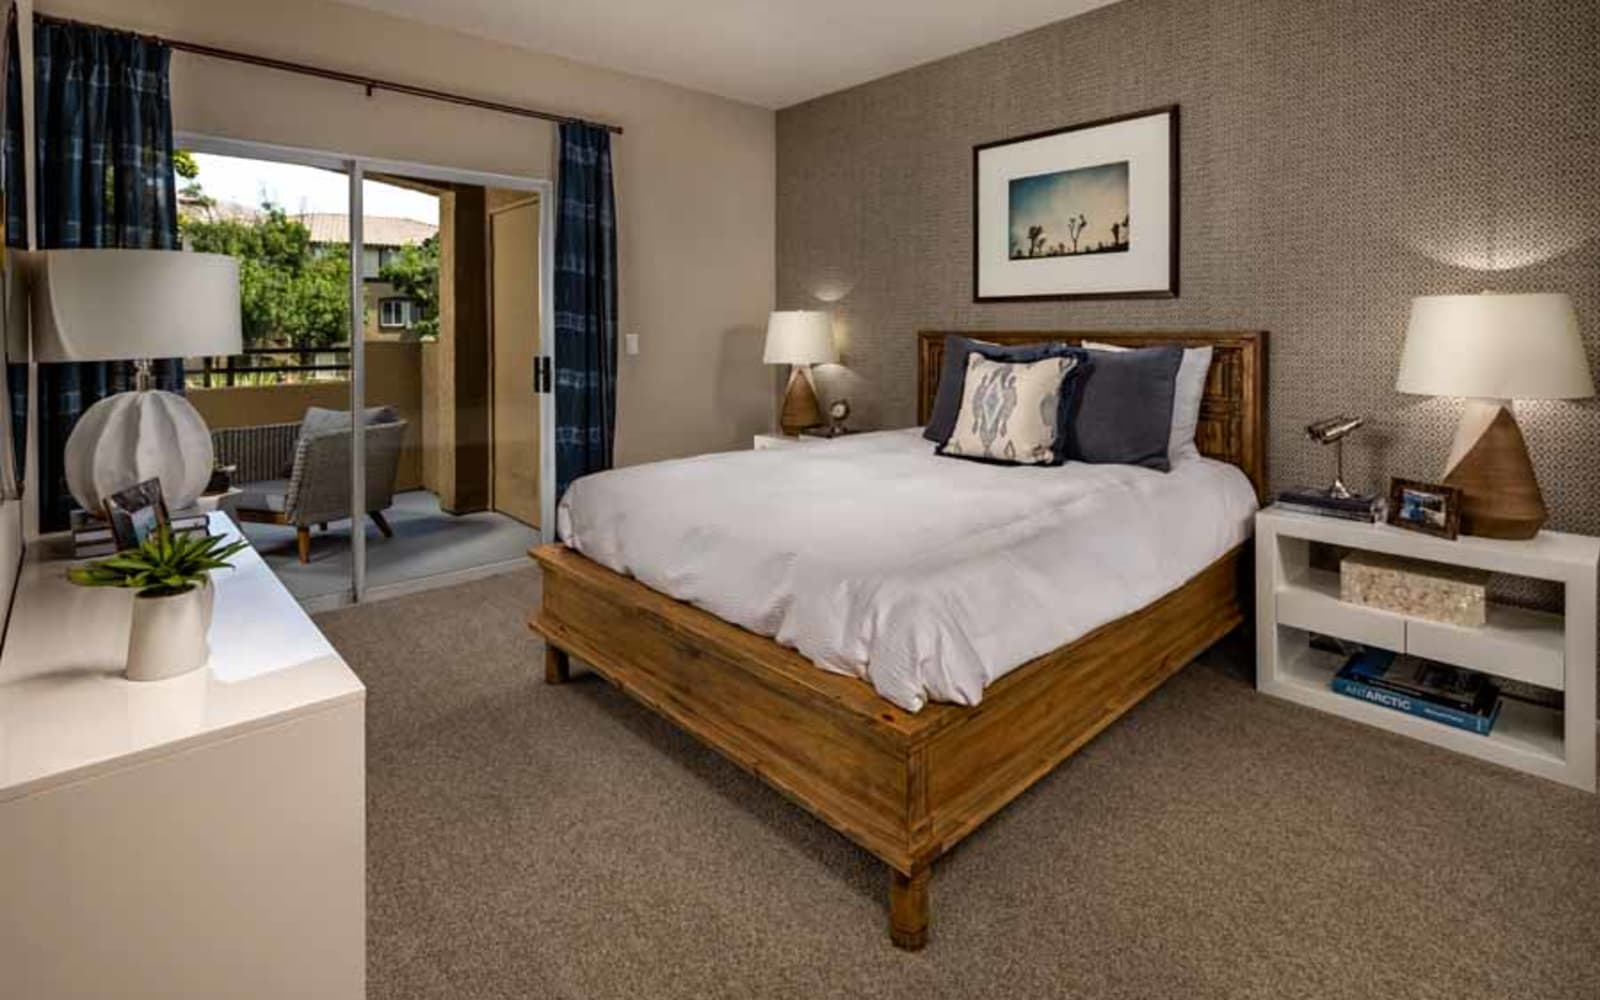 A spacious apartment bedroom with balcony access at Castlerock at Sycamore Highlands in Riverside, California